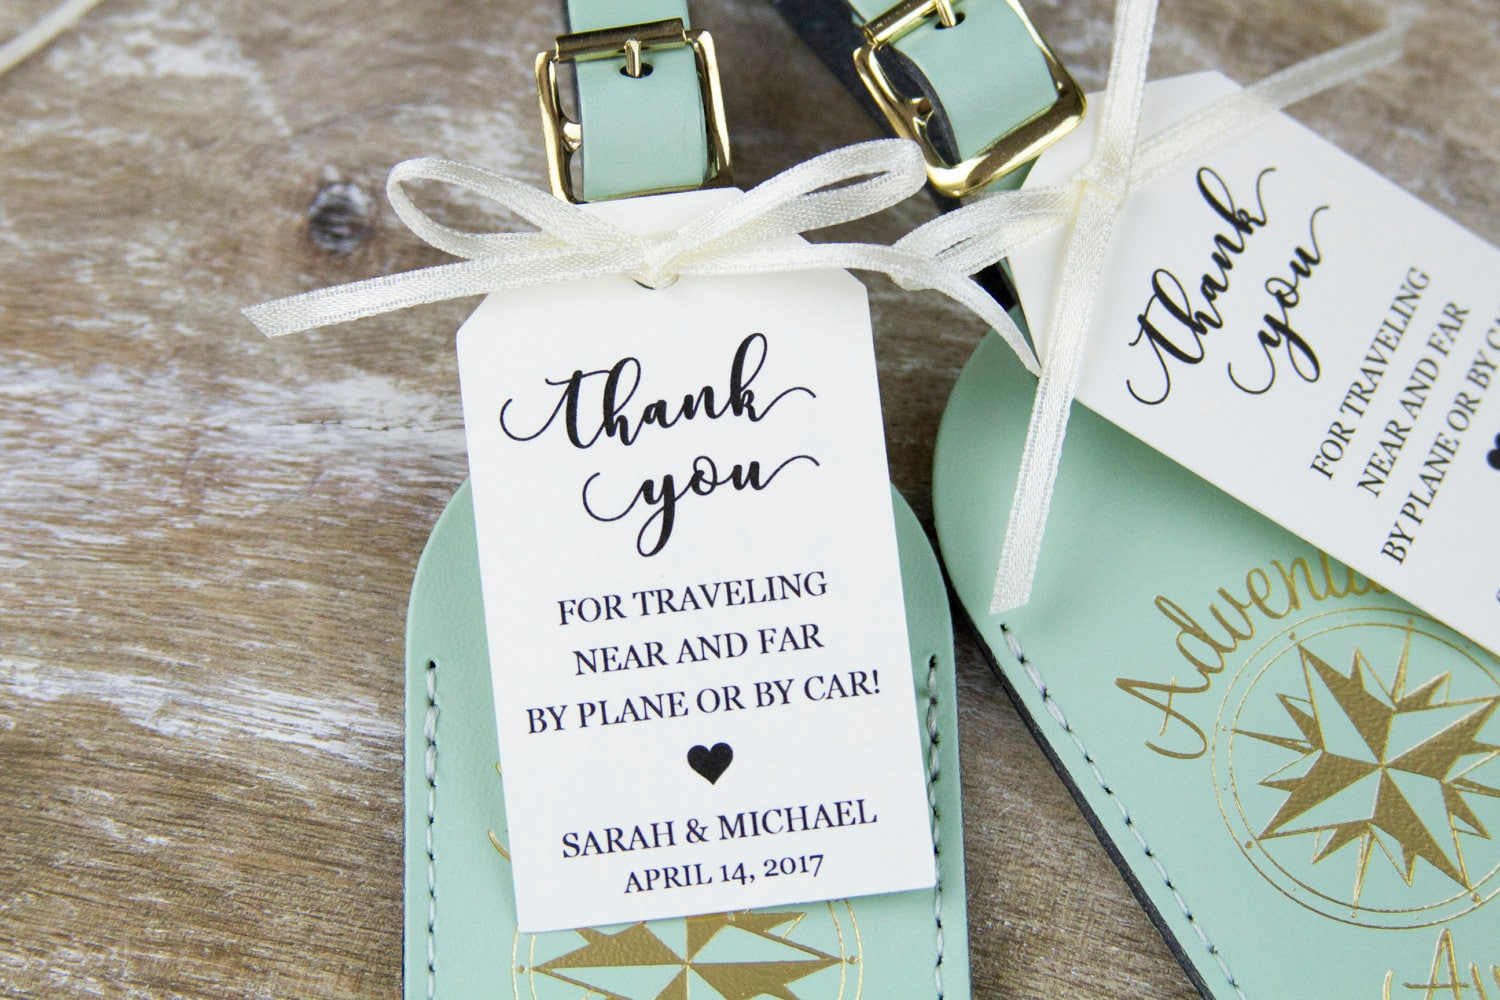 Personalized Luggage Tags Wedding Gift: Thank You Tag Wedding Favor Tag Luggage Favor Tag